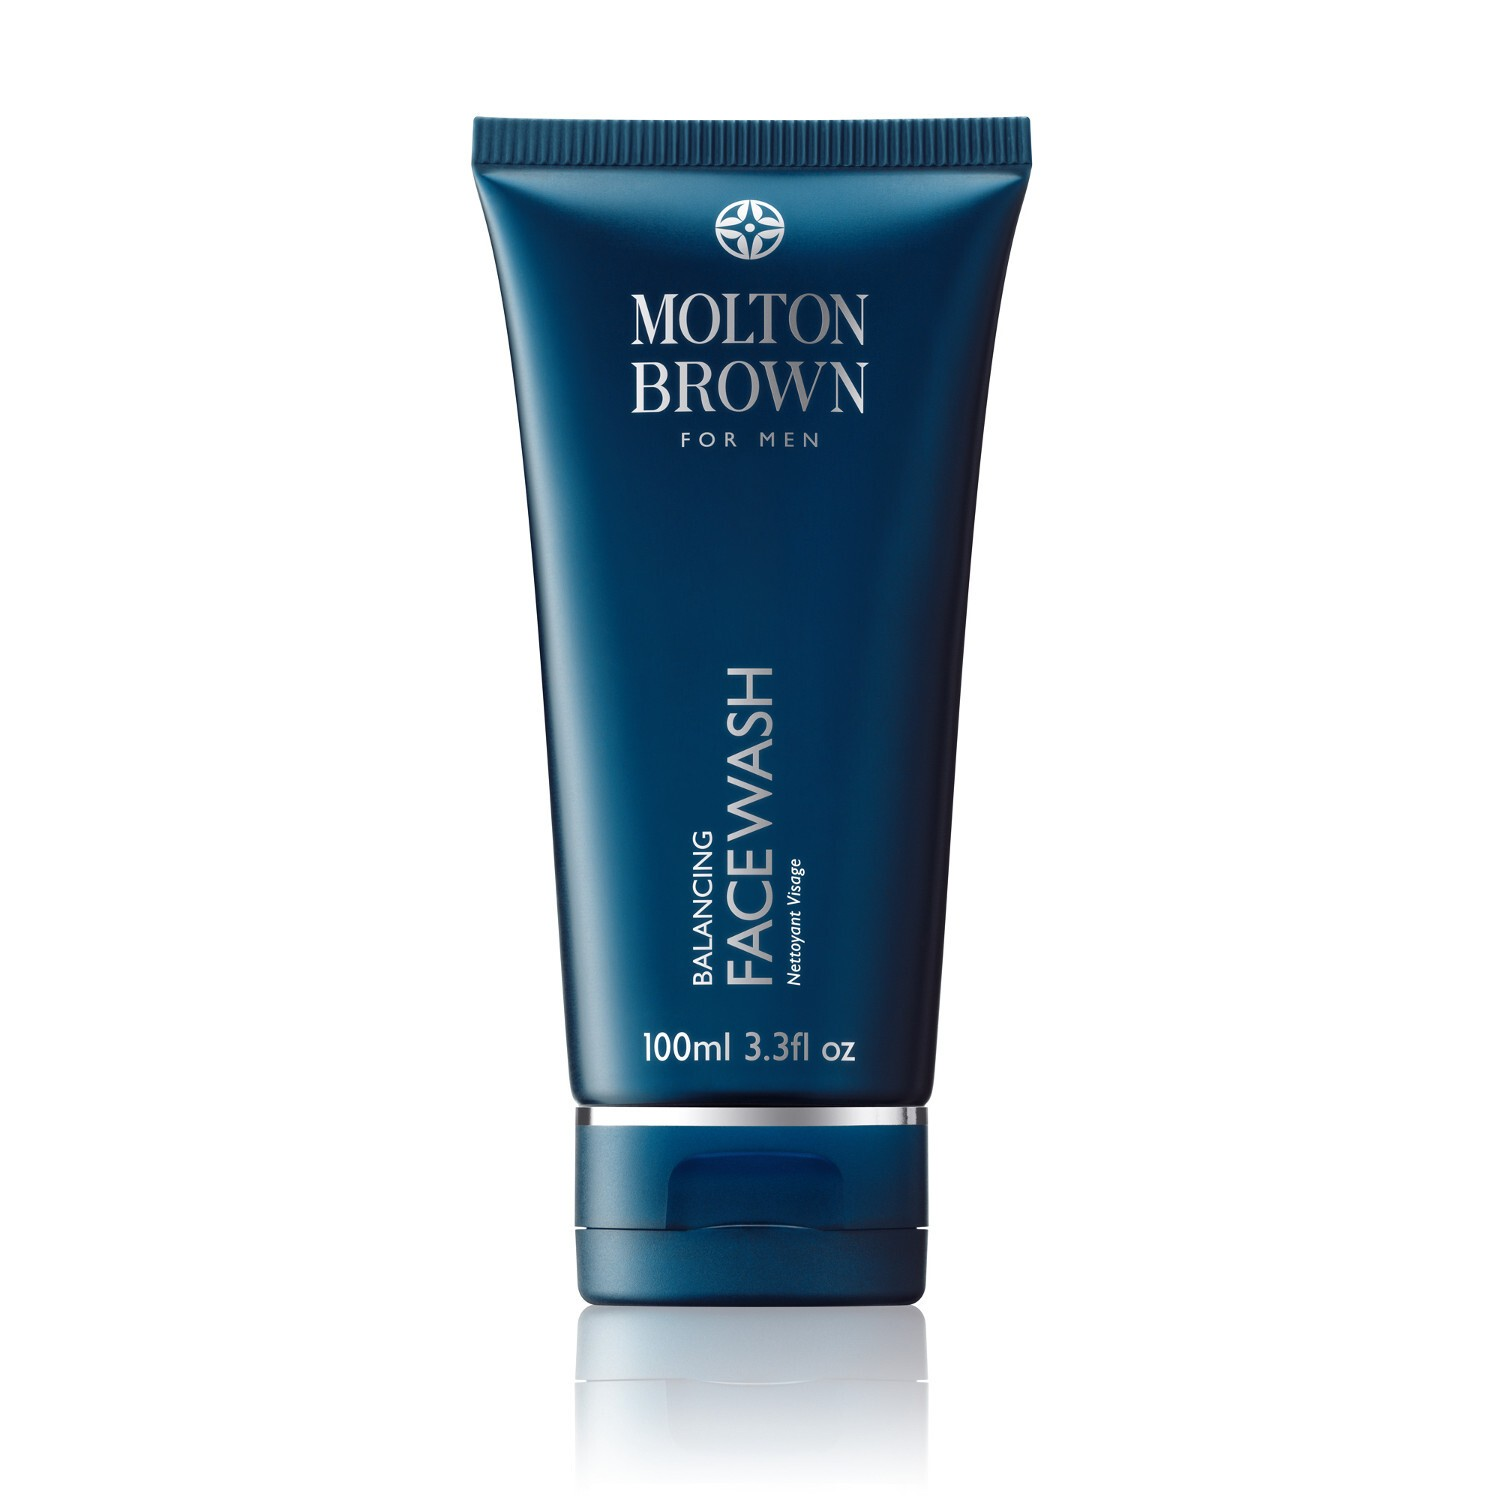 MOLTON BROWN FACE WASH 100 ML